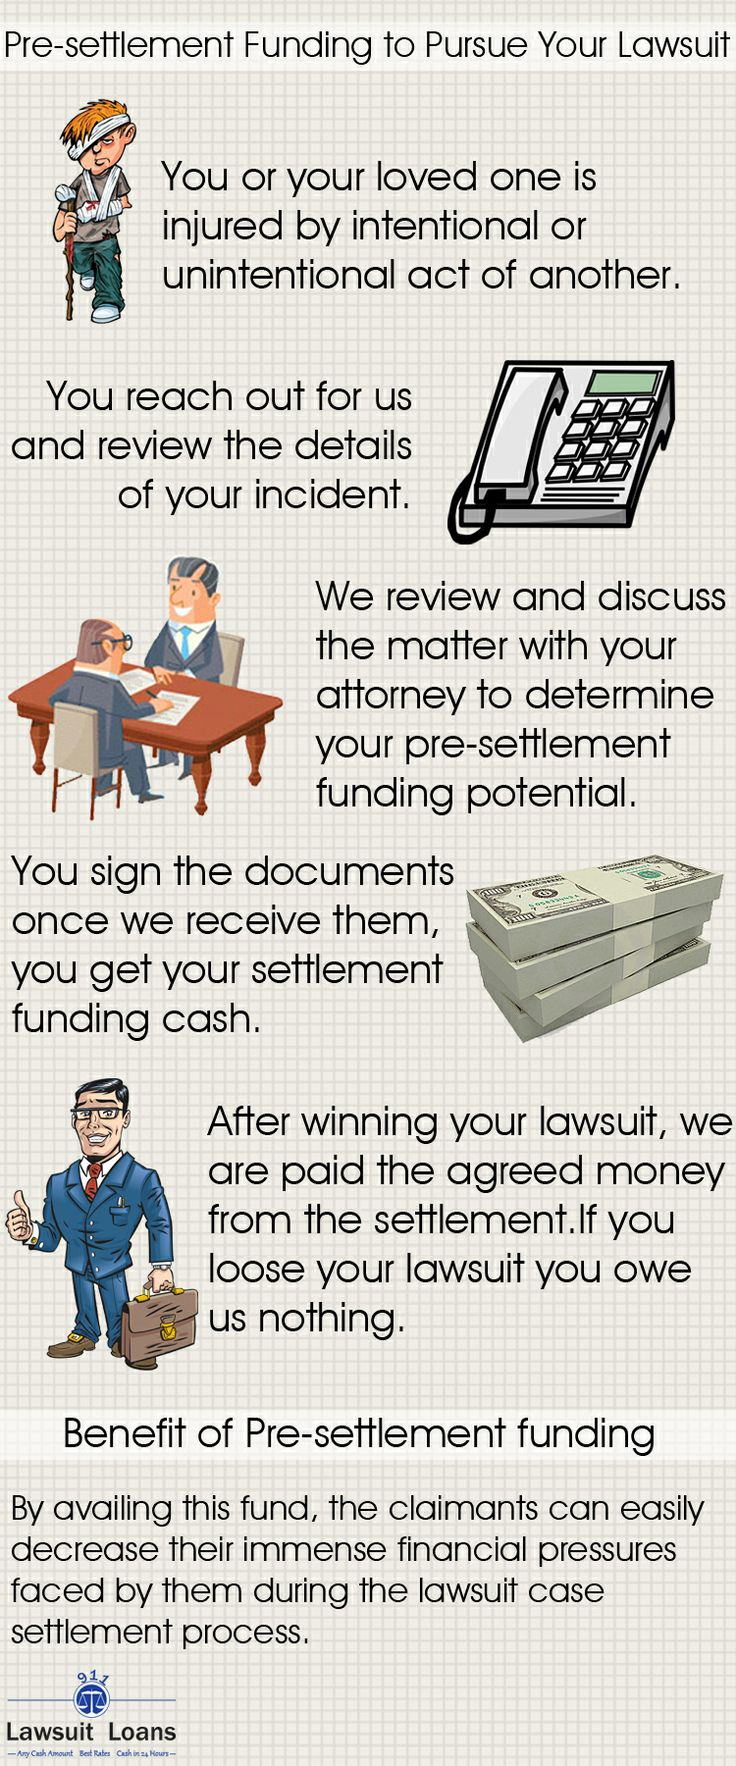 Avail Pre-settlement Funding to Pursue Your Lawsuit Successfully